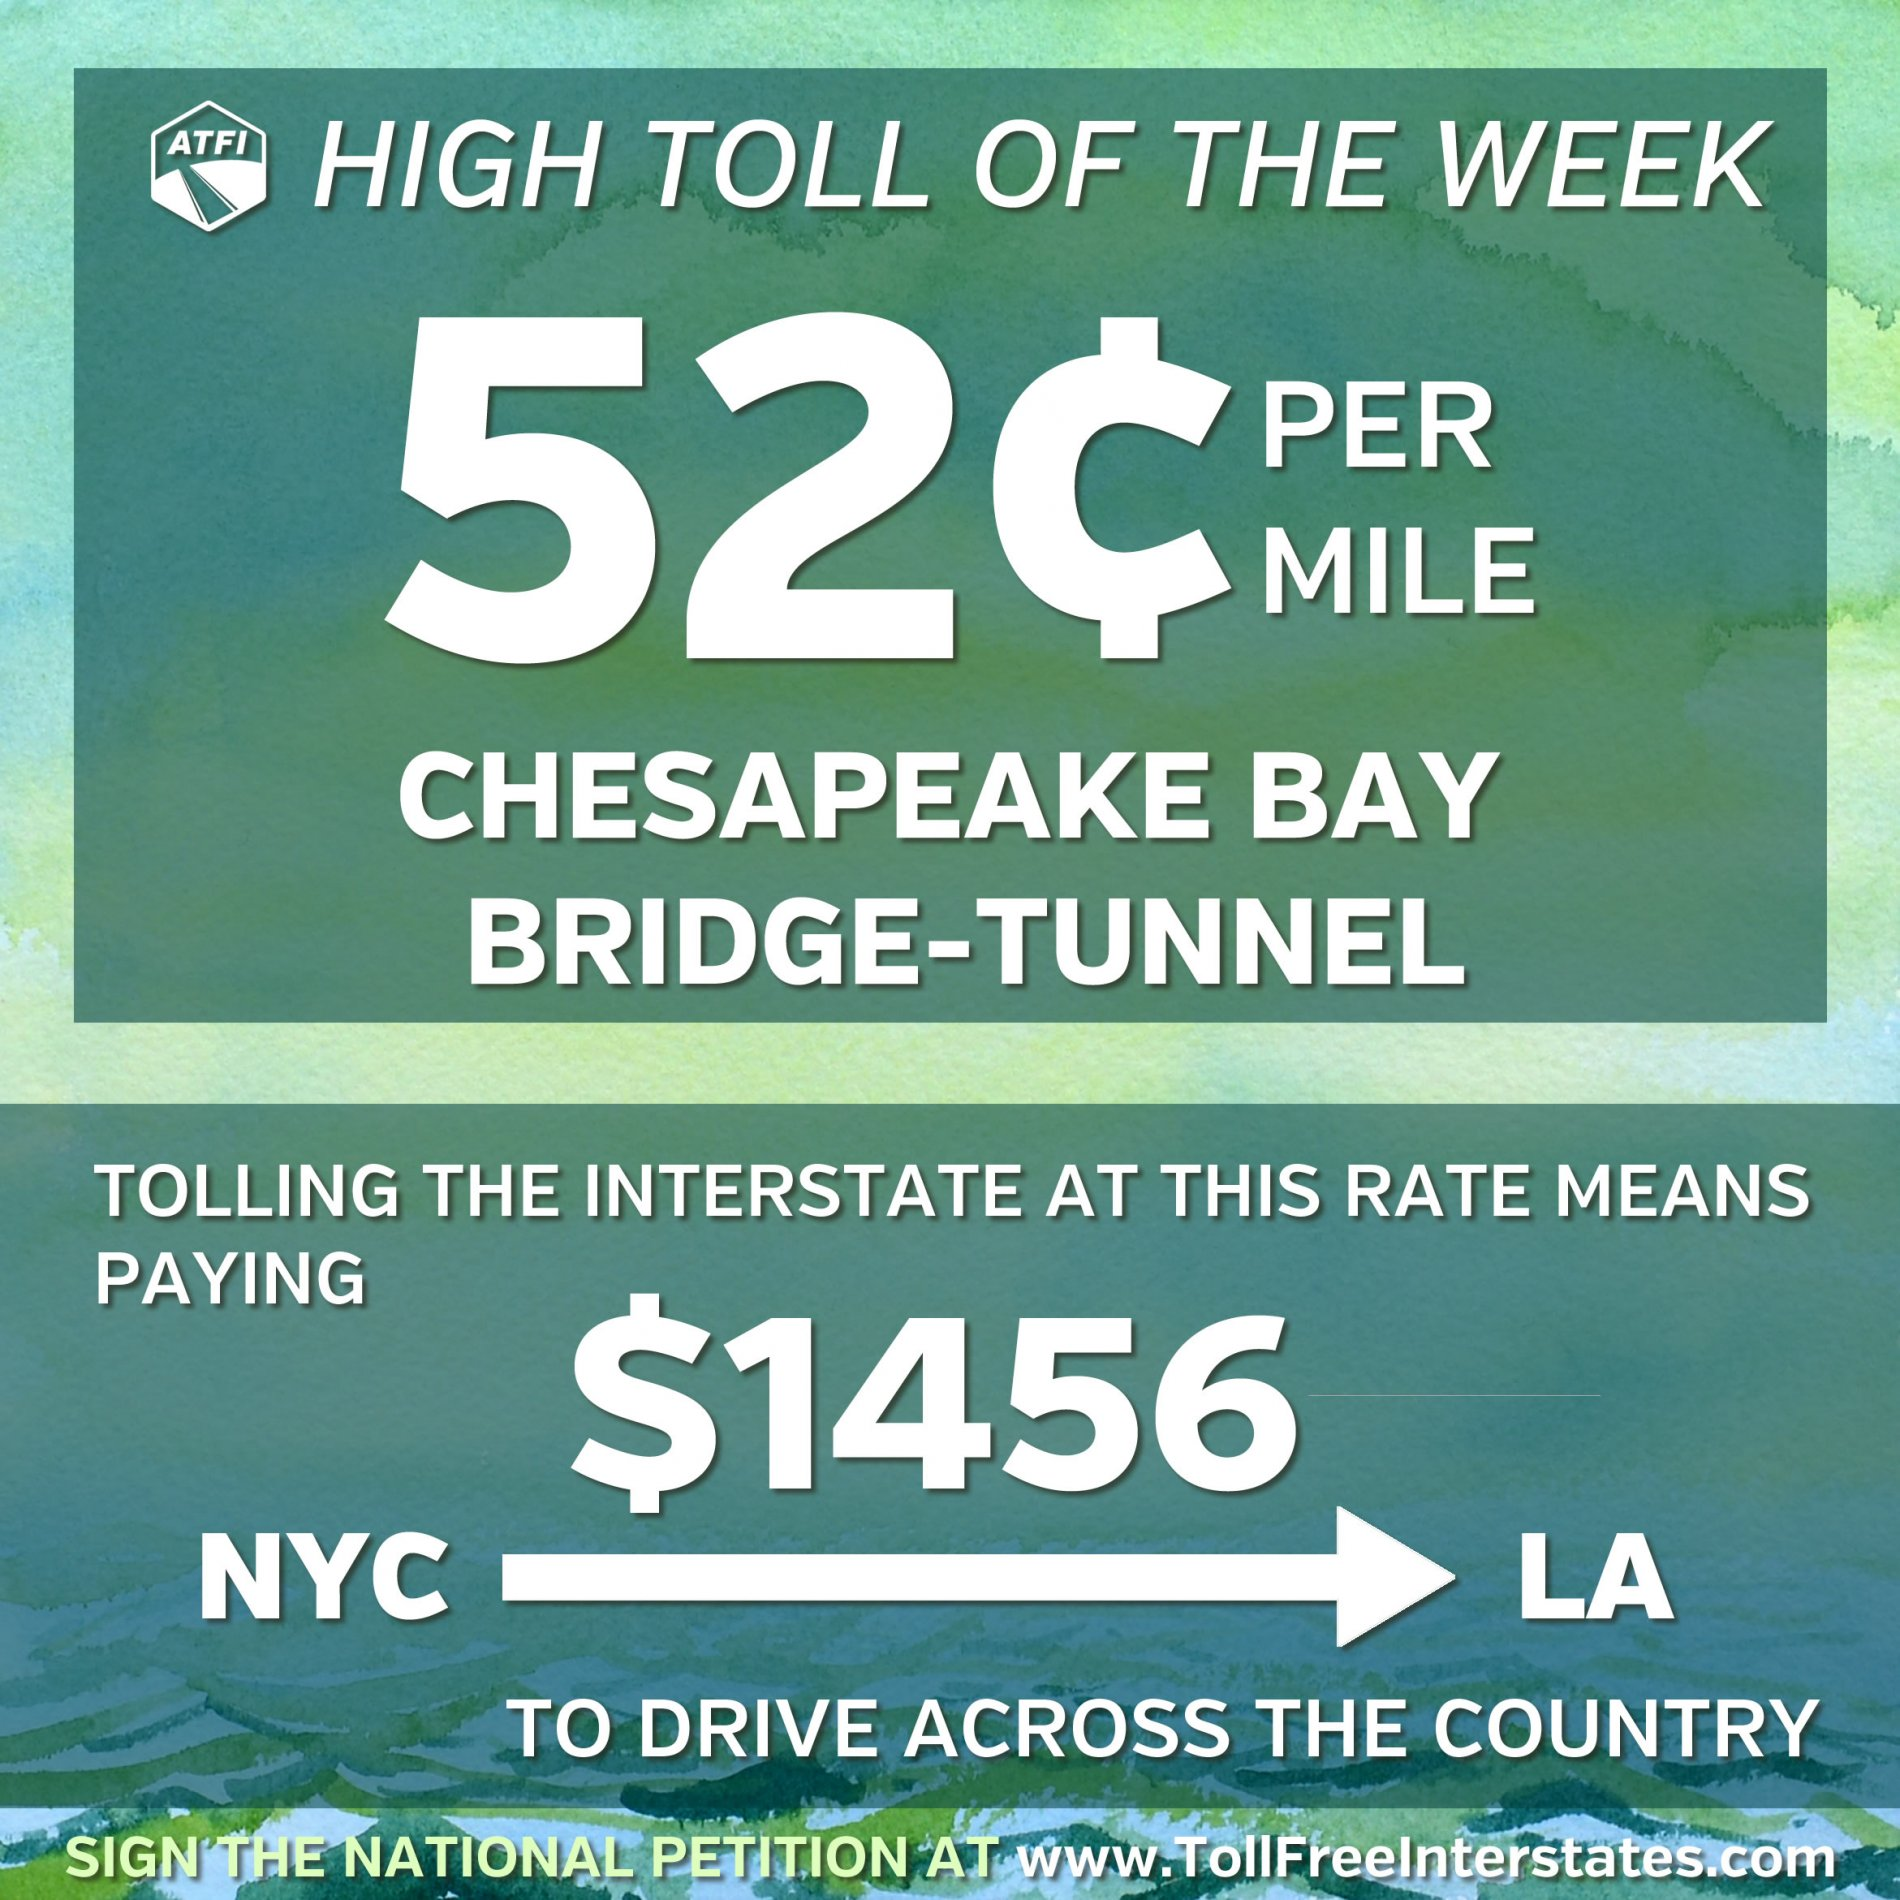 HRBT High Toll of the Week - $1456 from NYC to LA